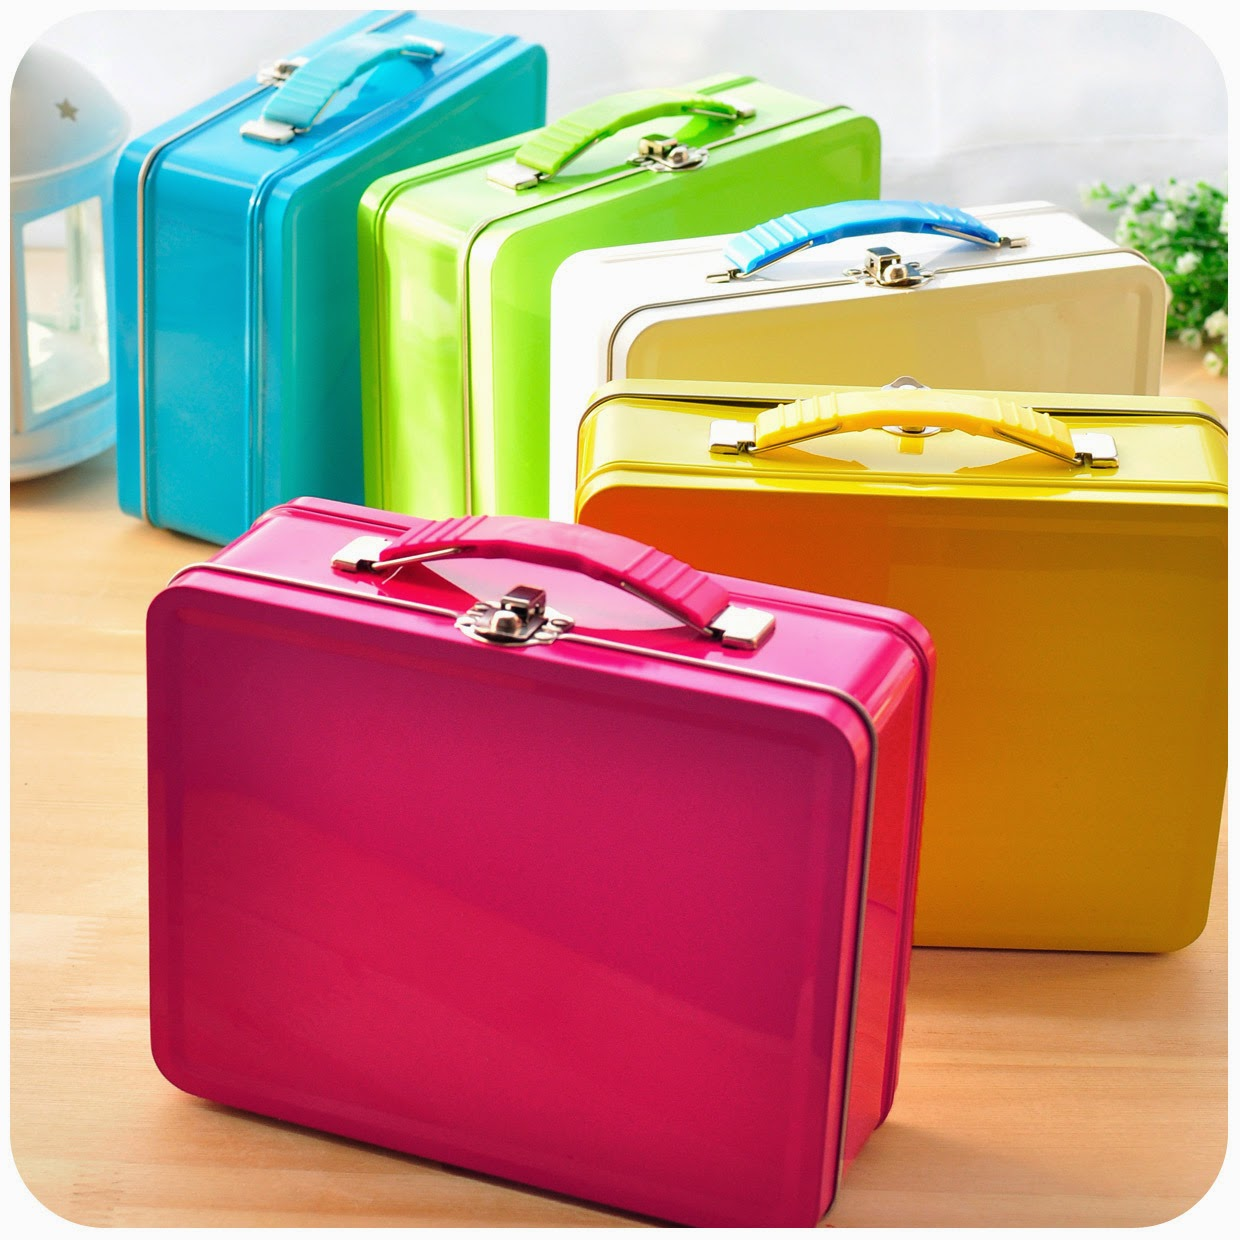 The Amazing Candy Color Portable Tin Box Storage Lock